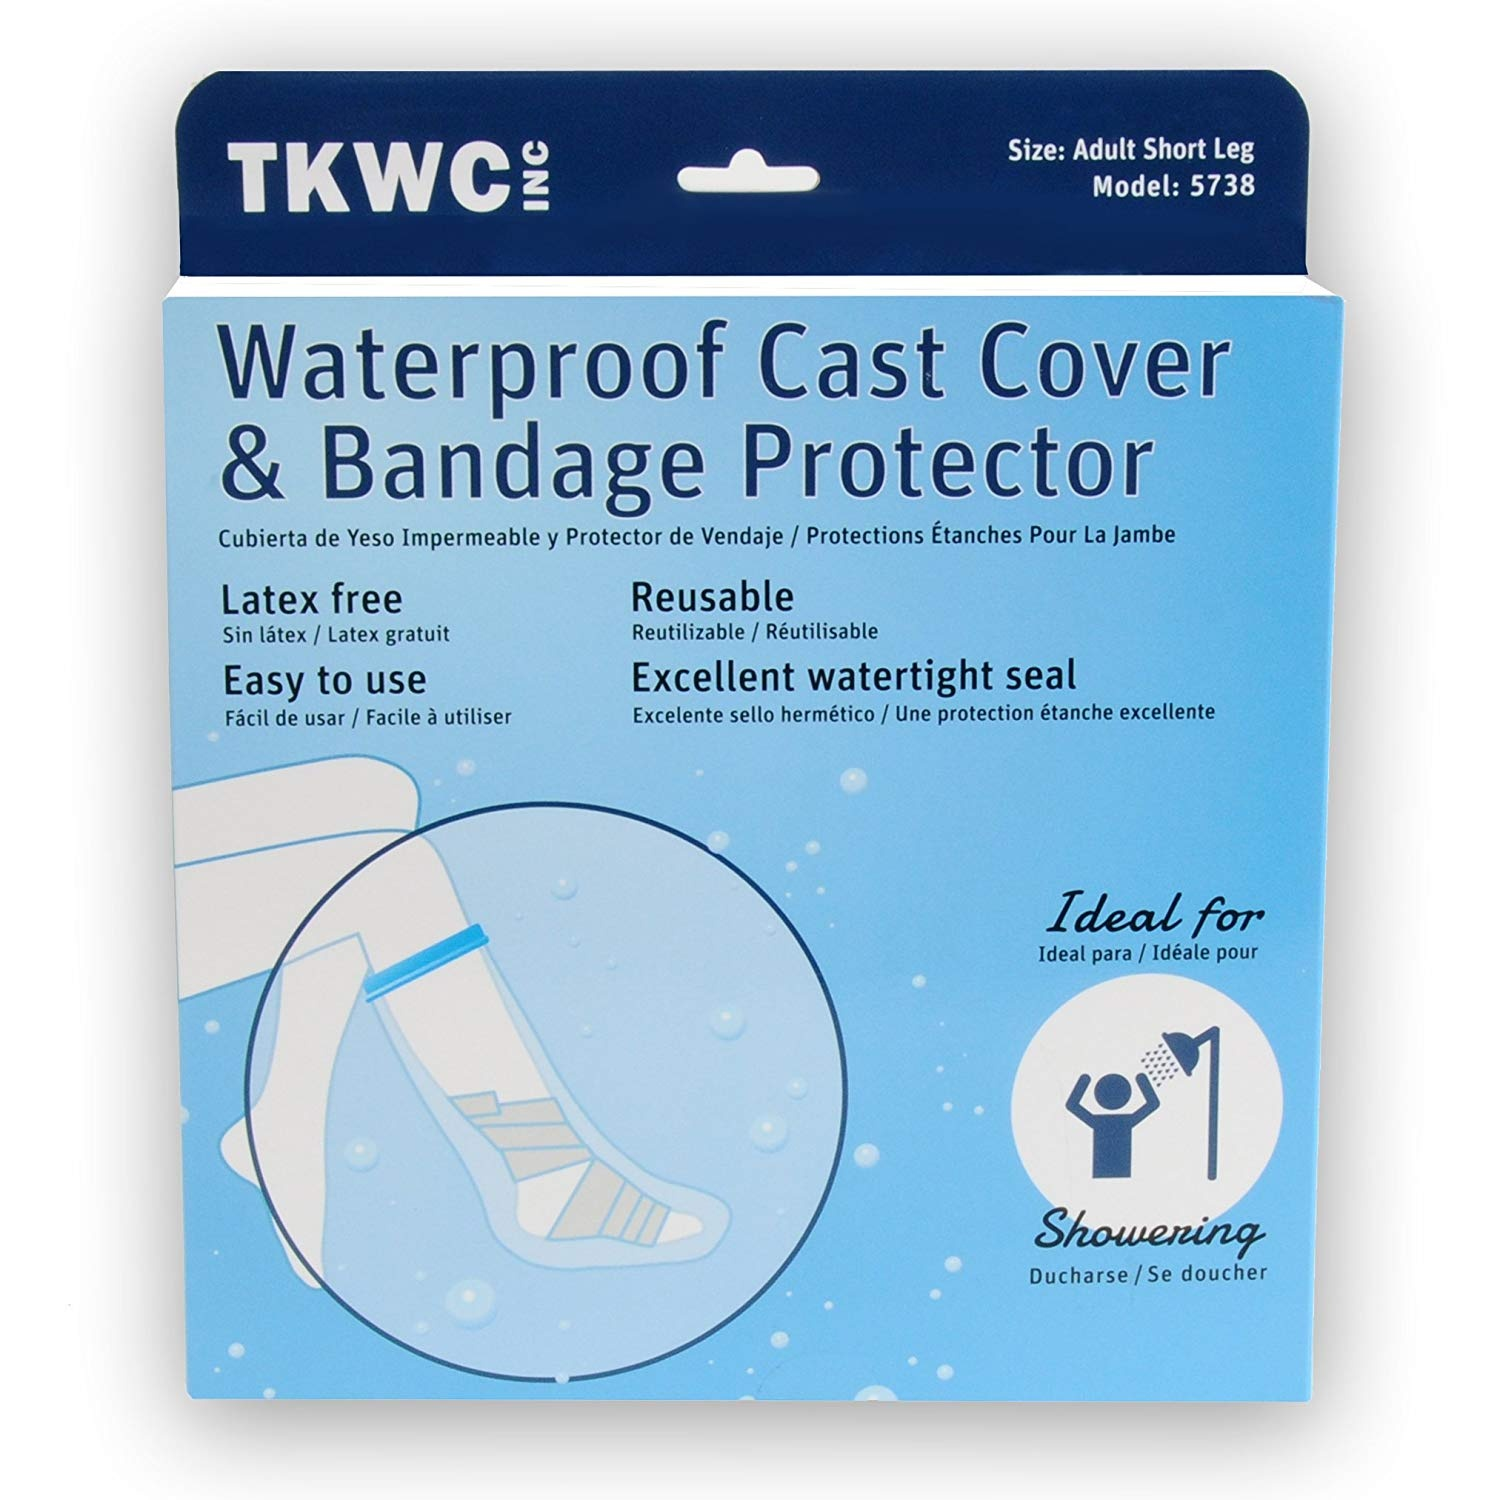 Bath & Shower Bath Energetic Adult Waterproof Adult Sealed Cast Bandage Protector Wound Fracture Hand Arm Cover For Shower Bath Foot Hands Skin Care Tools Fixing Prices According To Quality Of Products